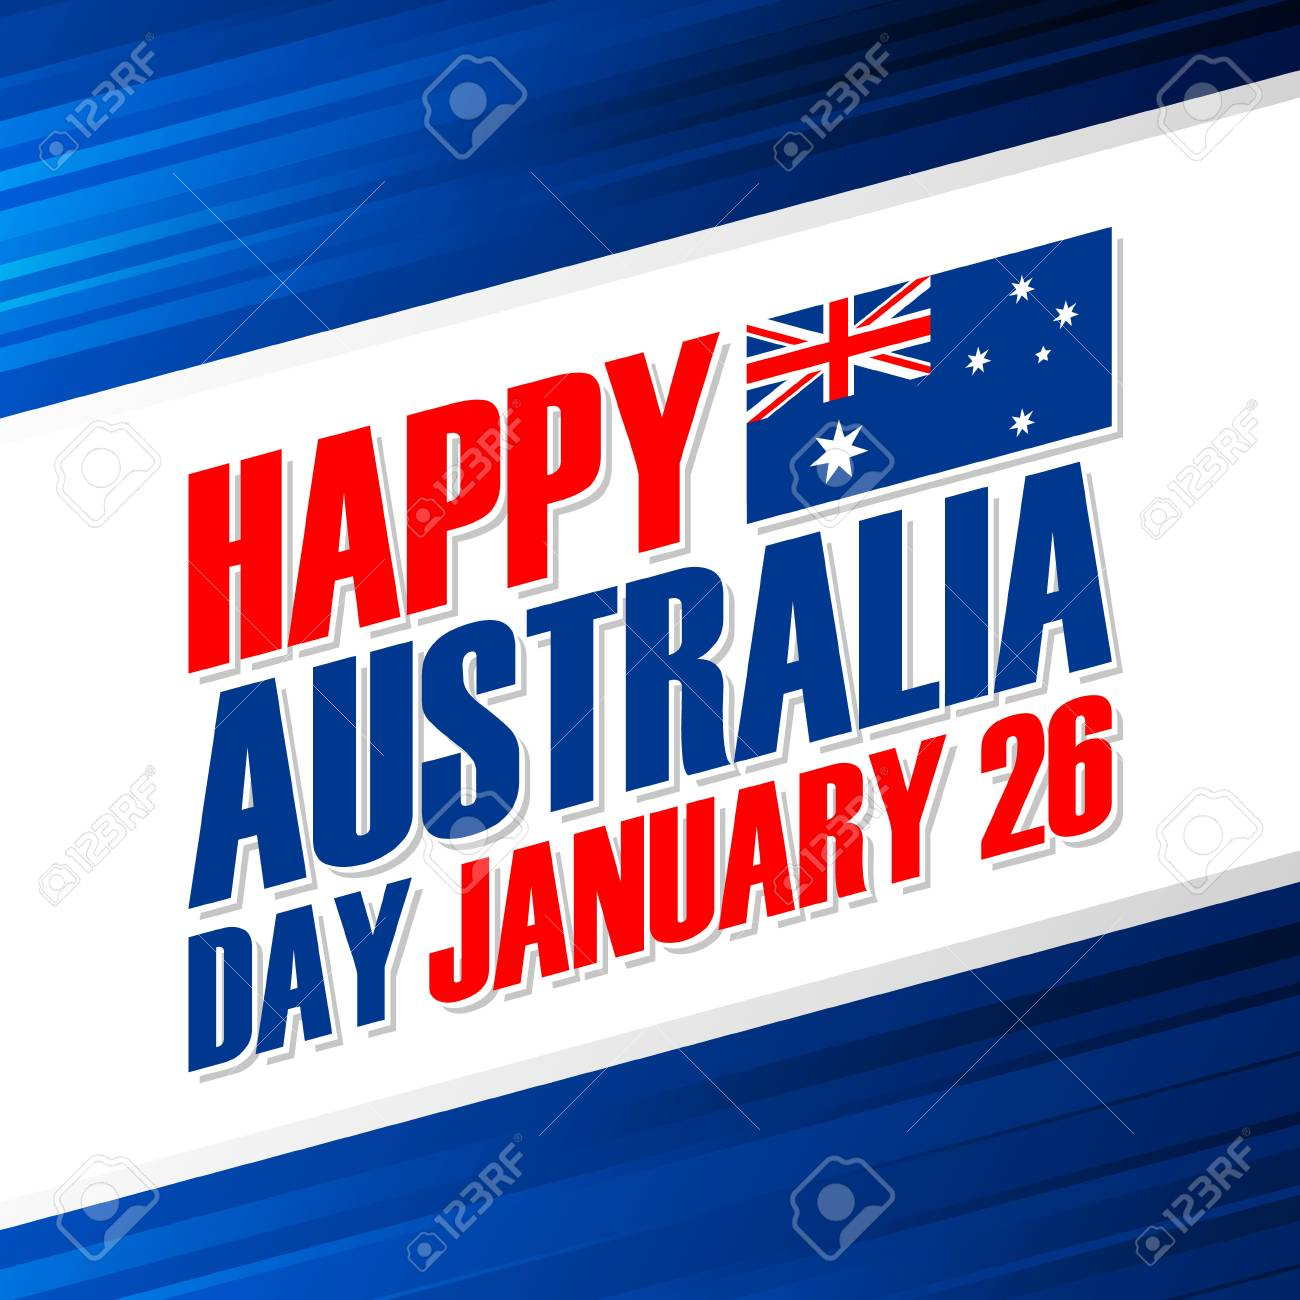 Happy australia day january 26 greeting card vector illustration happy australia day january 26 greeting card vector illustration stock vector 93003886 m4hsunfo